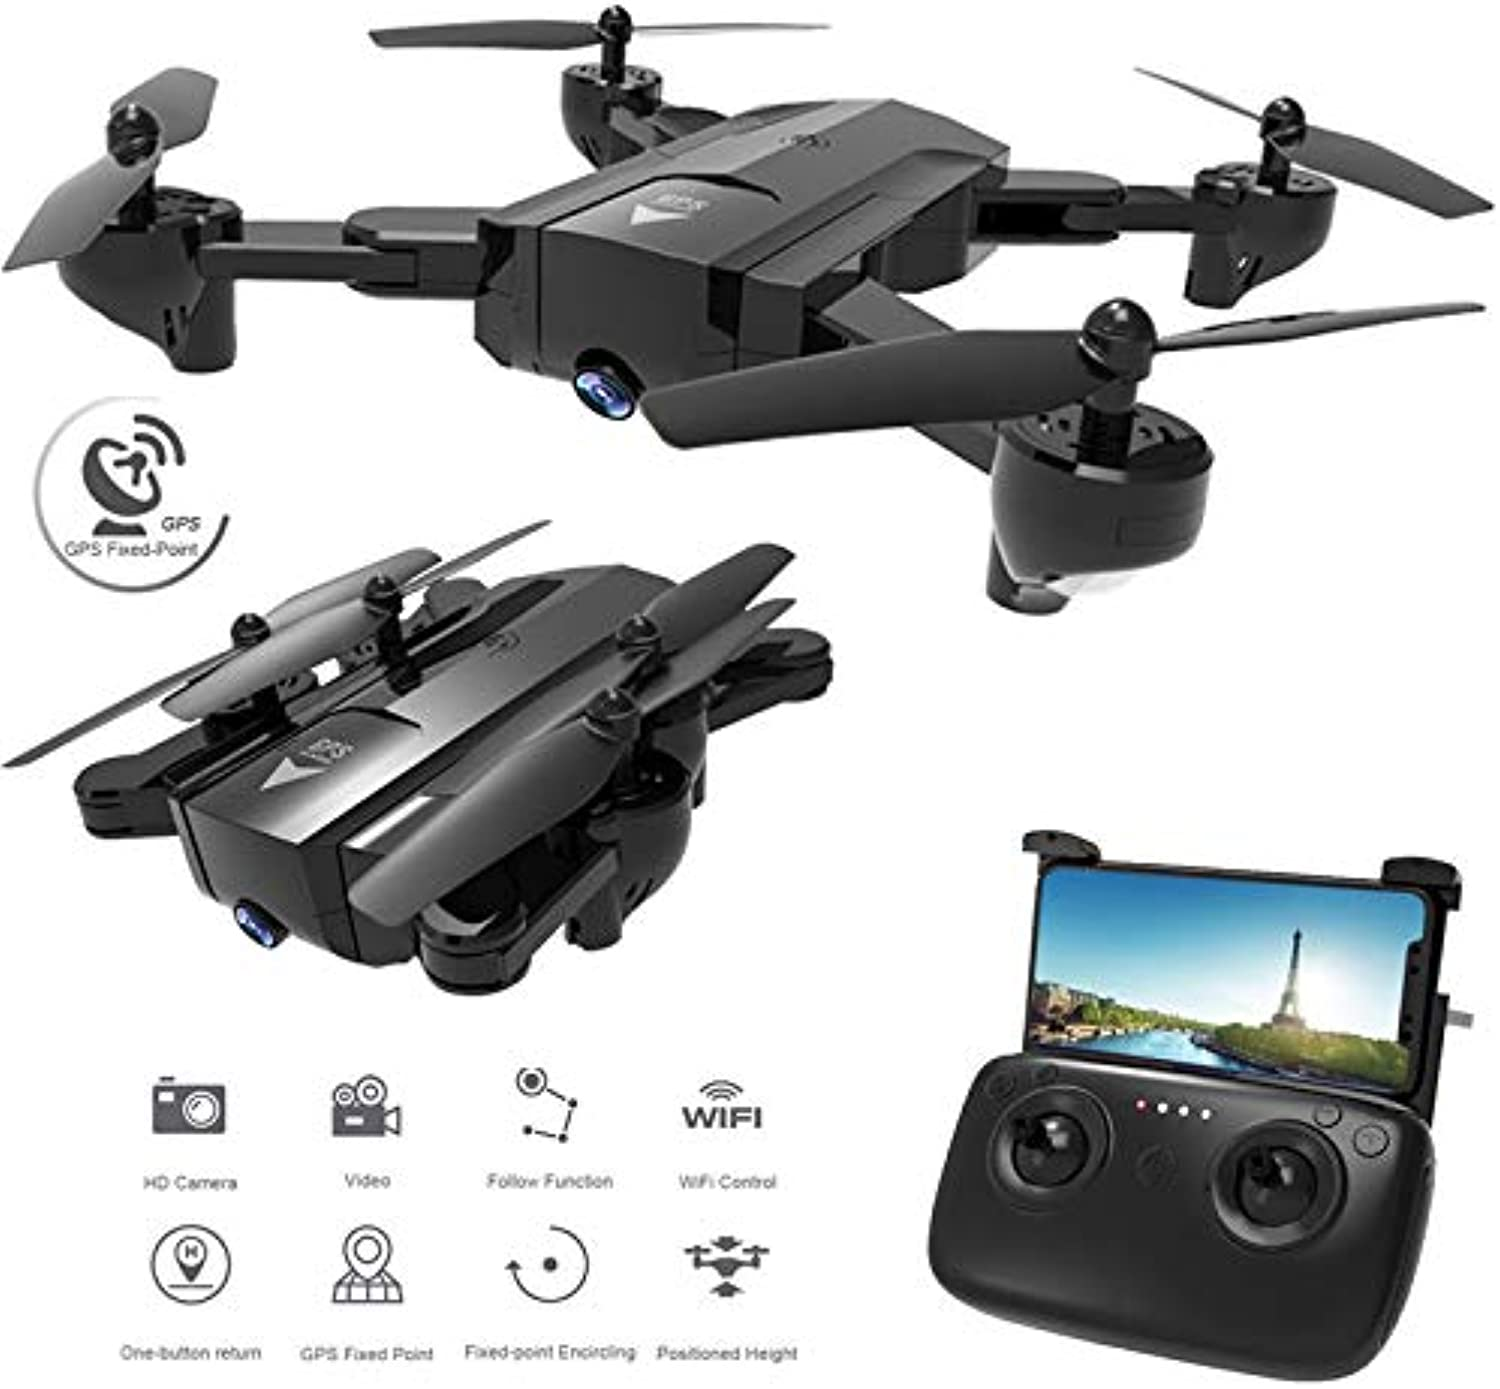 Mengen88 Luft-Quadcopter FPV RC WiFi Drone Foldable Arms 1080P HD Camera 6-Axis Gyroskop Headless Mode One-Tasten-Take-Off , für Kinder & Anfnger